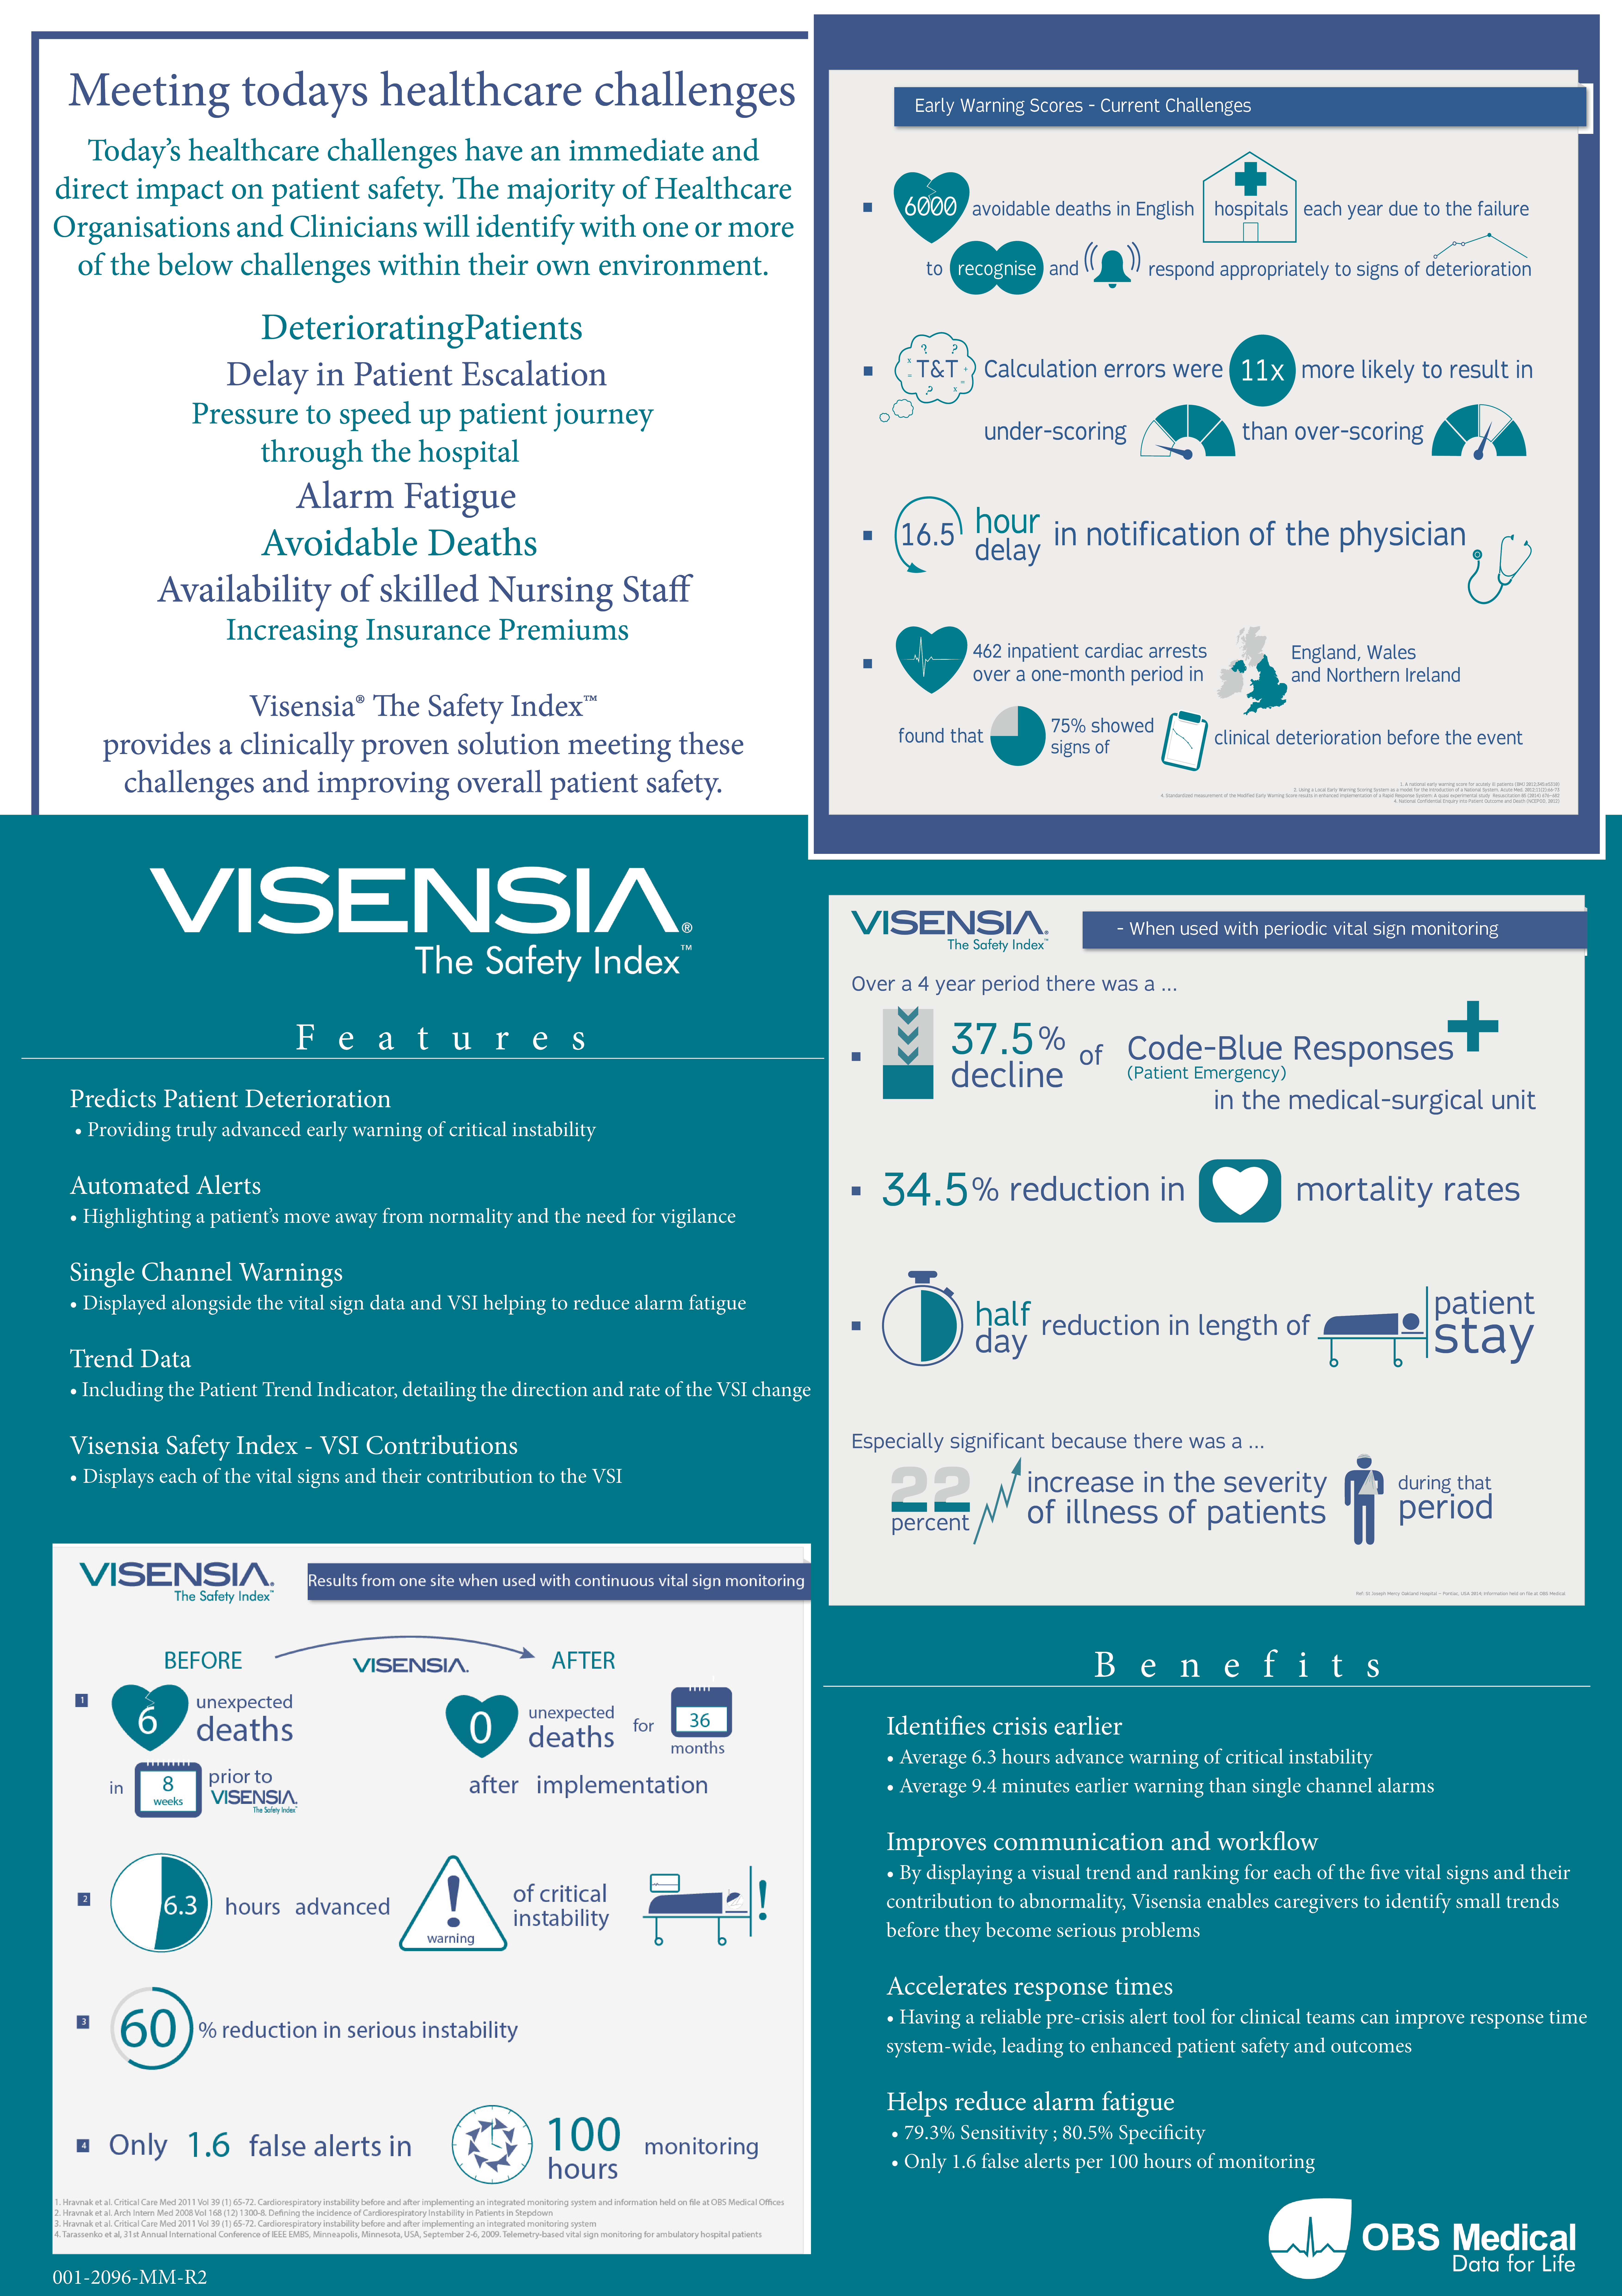 Visensia Meeting Todays Healthcare Challenges